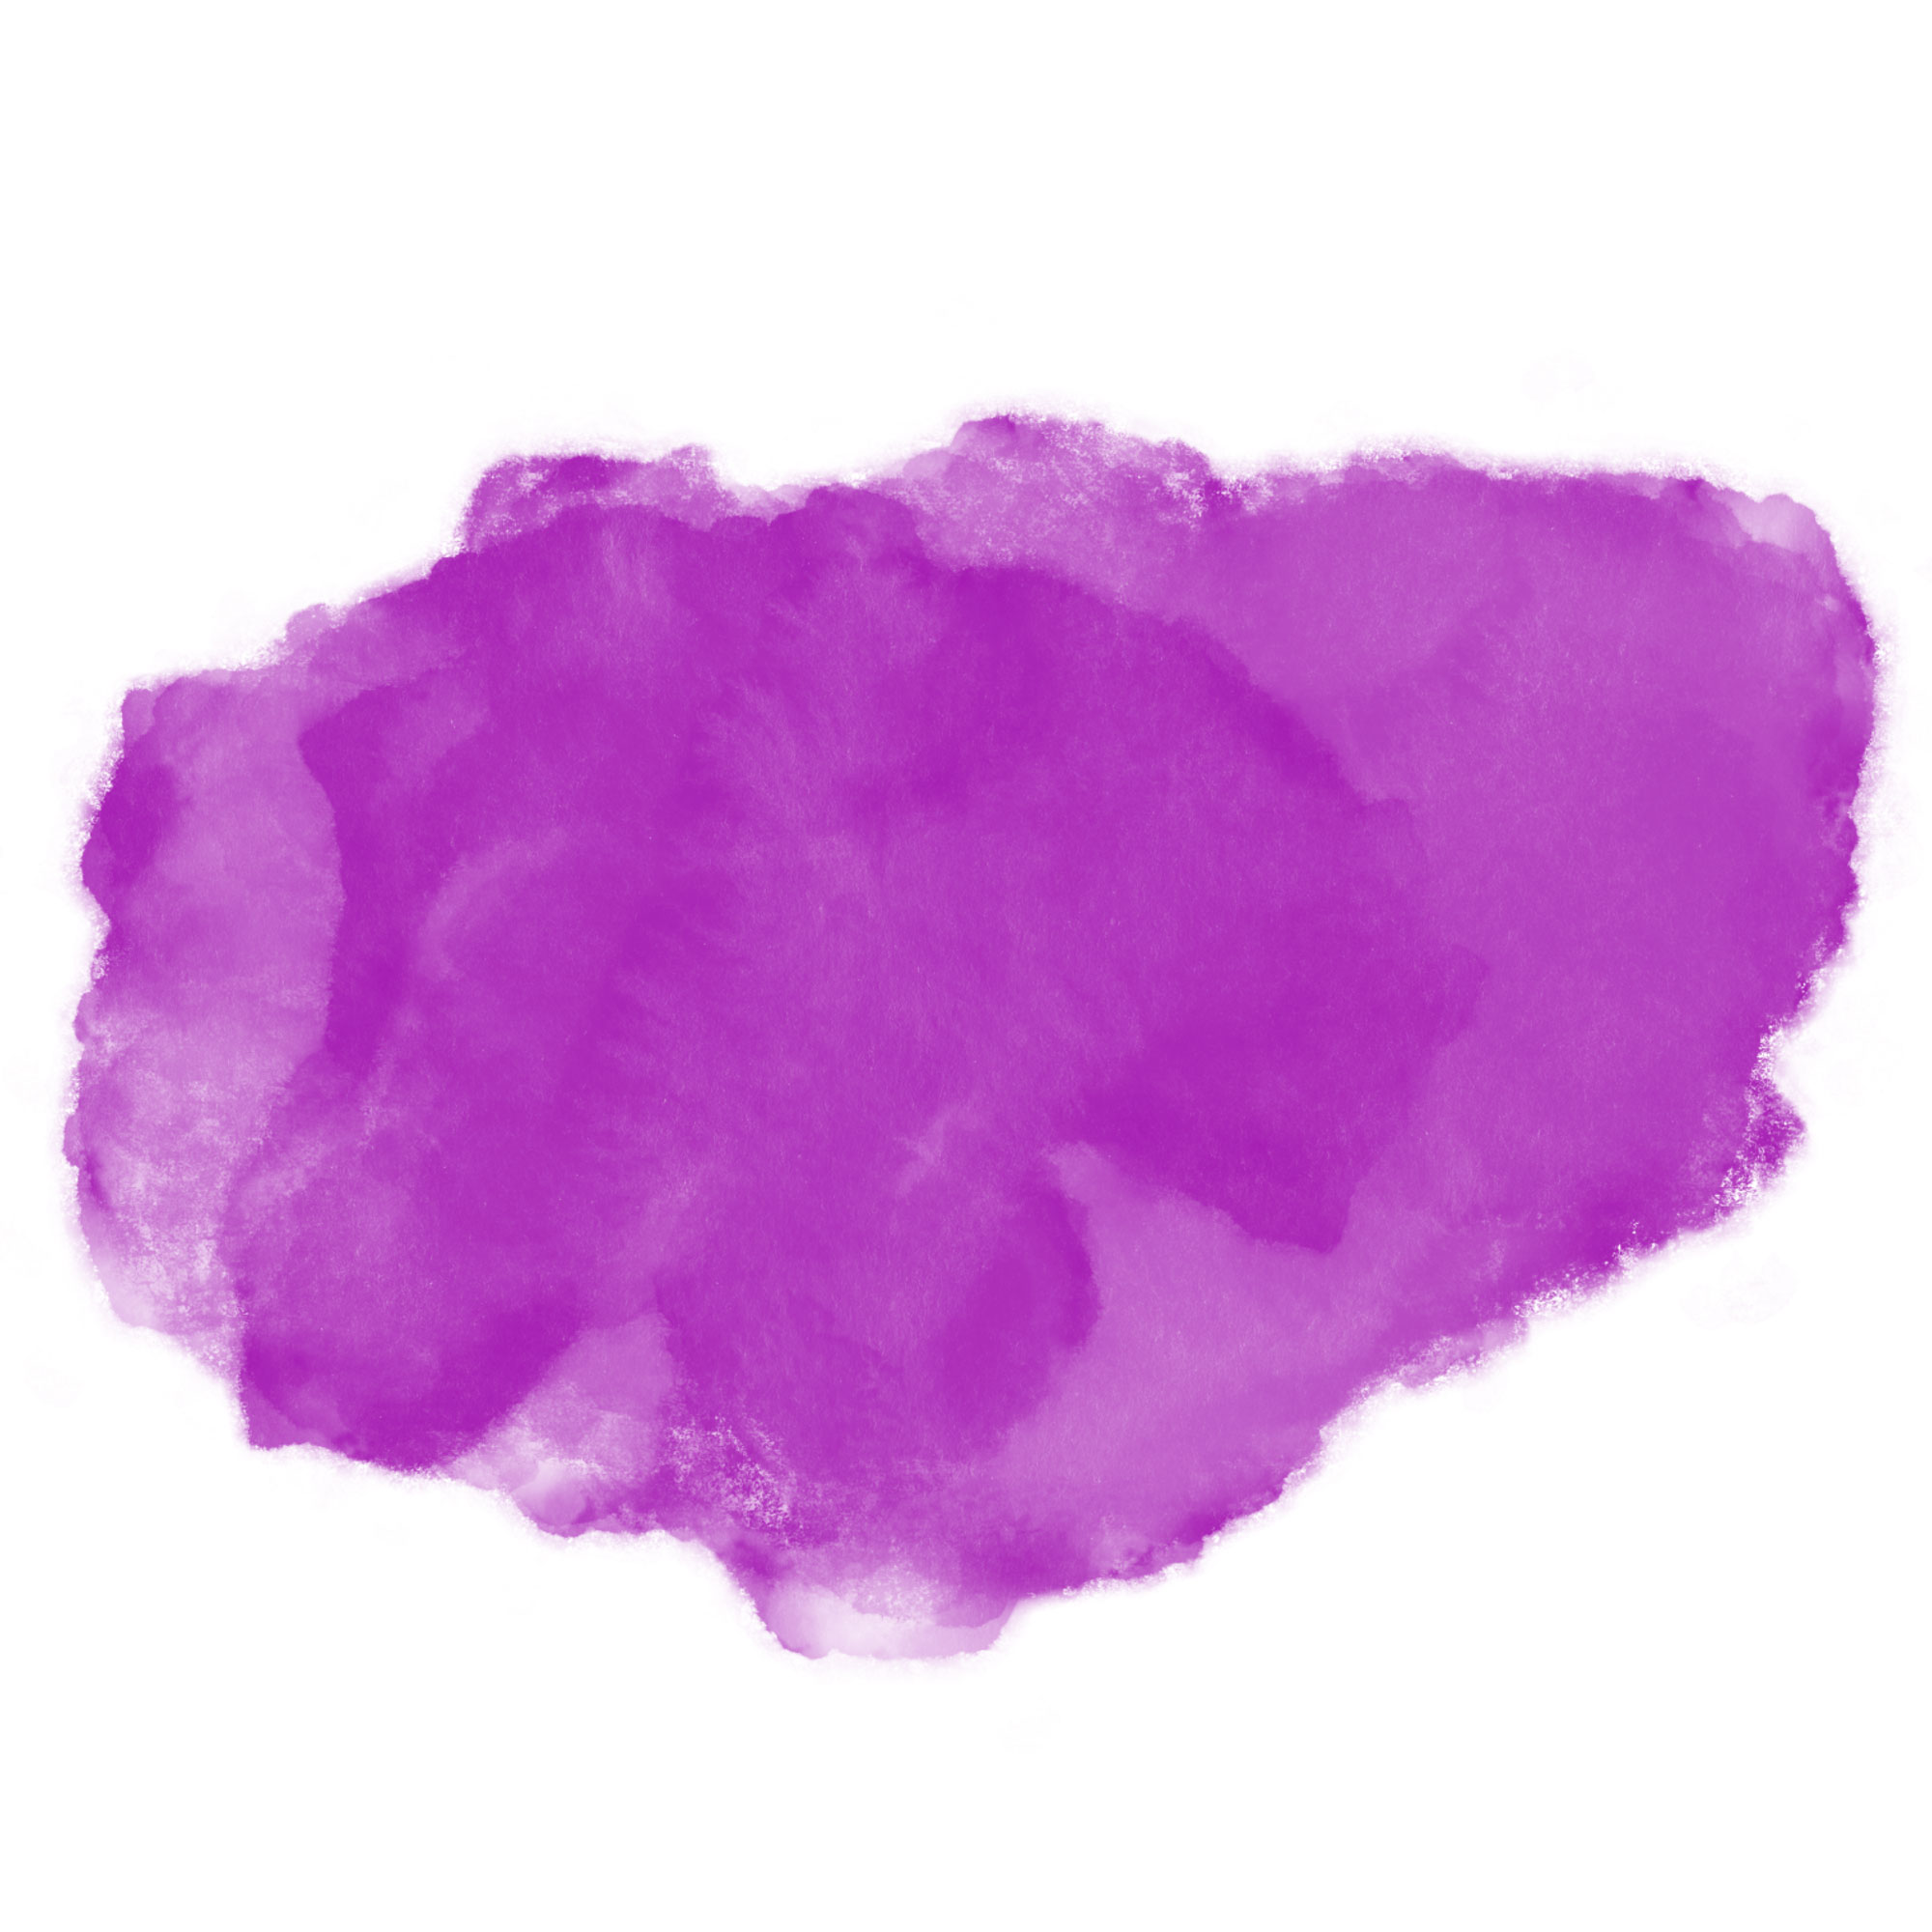 Purple watercolor